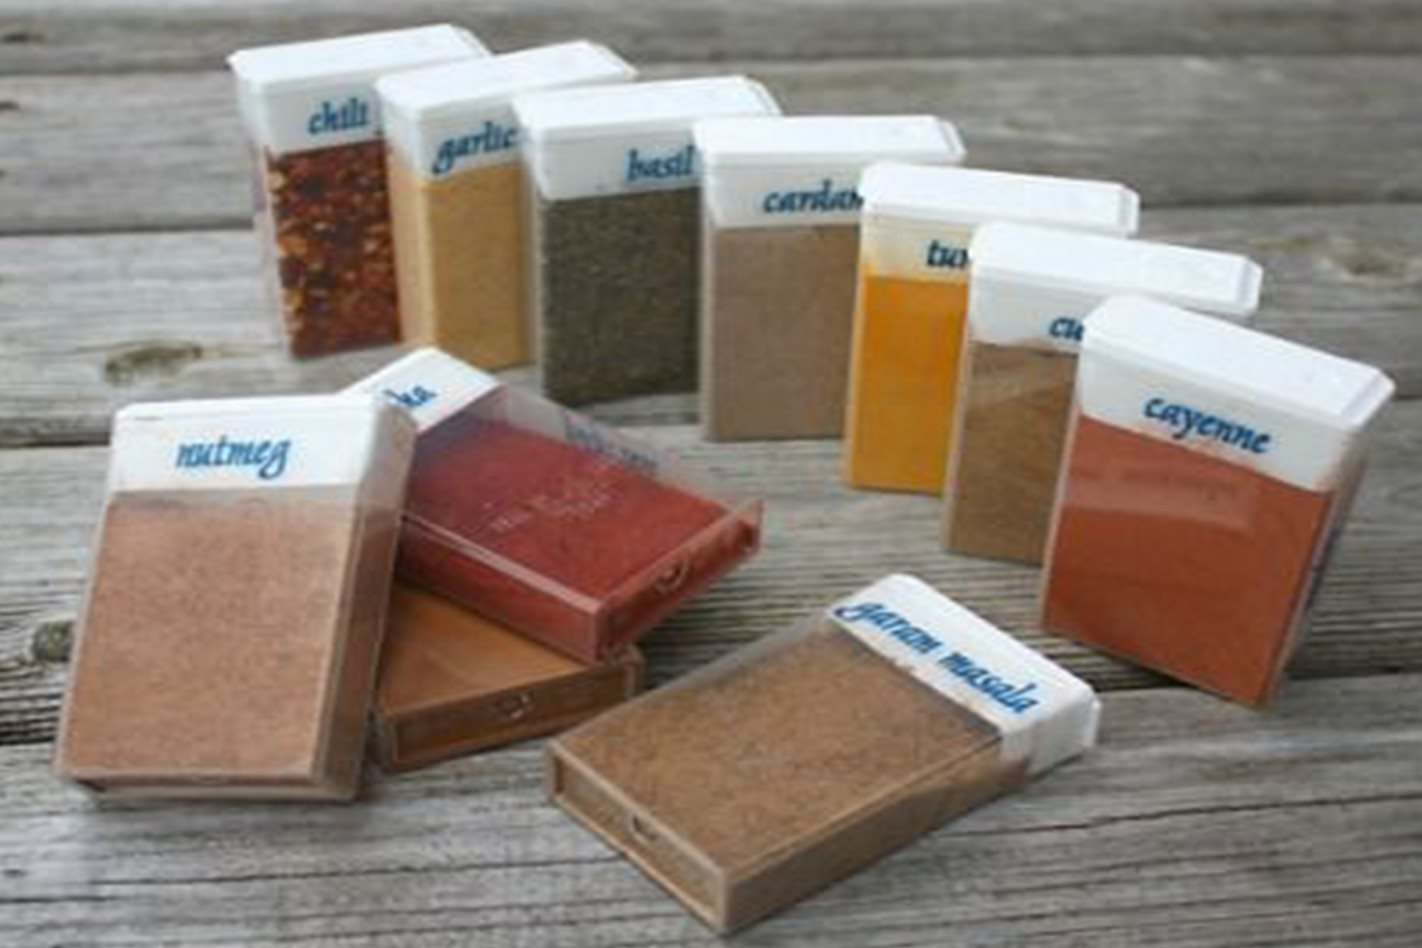 Camping sized travel spices